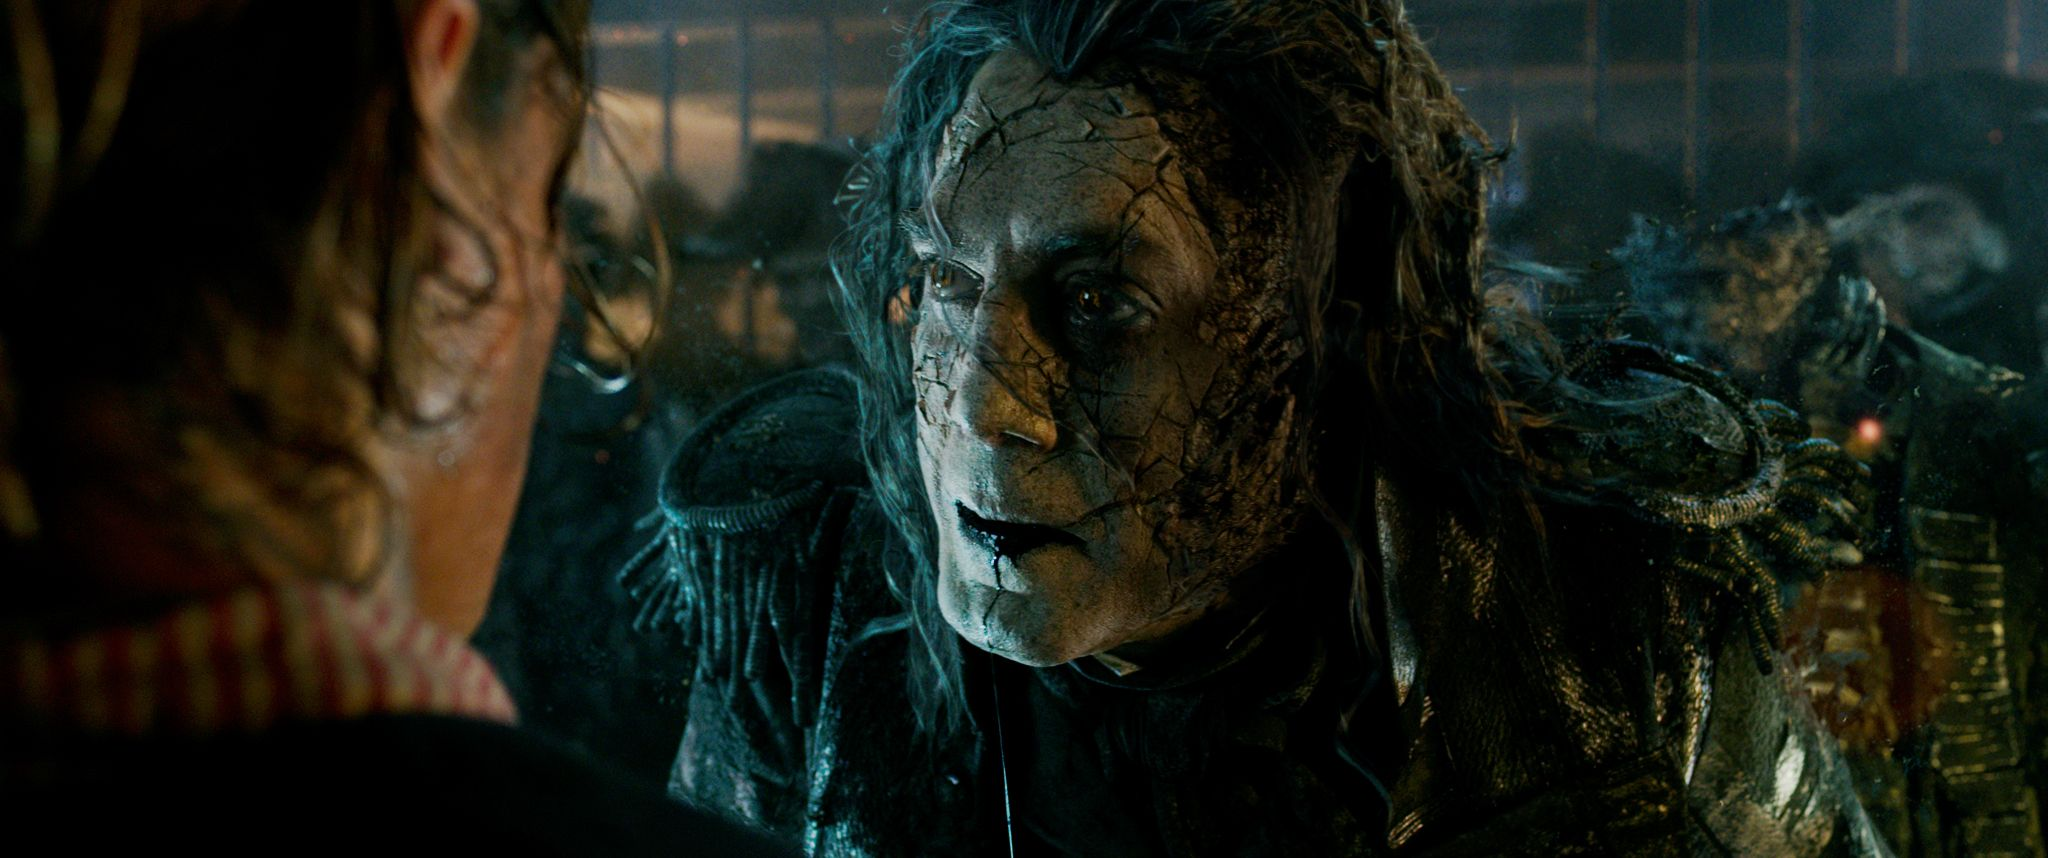 Image result for Pirates 5 stills